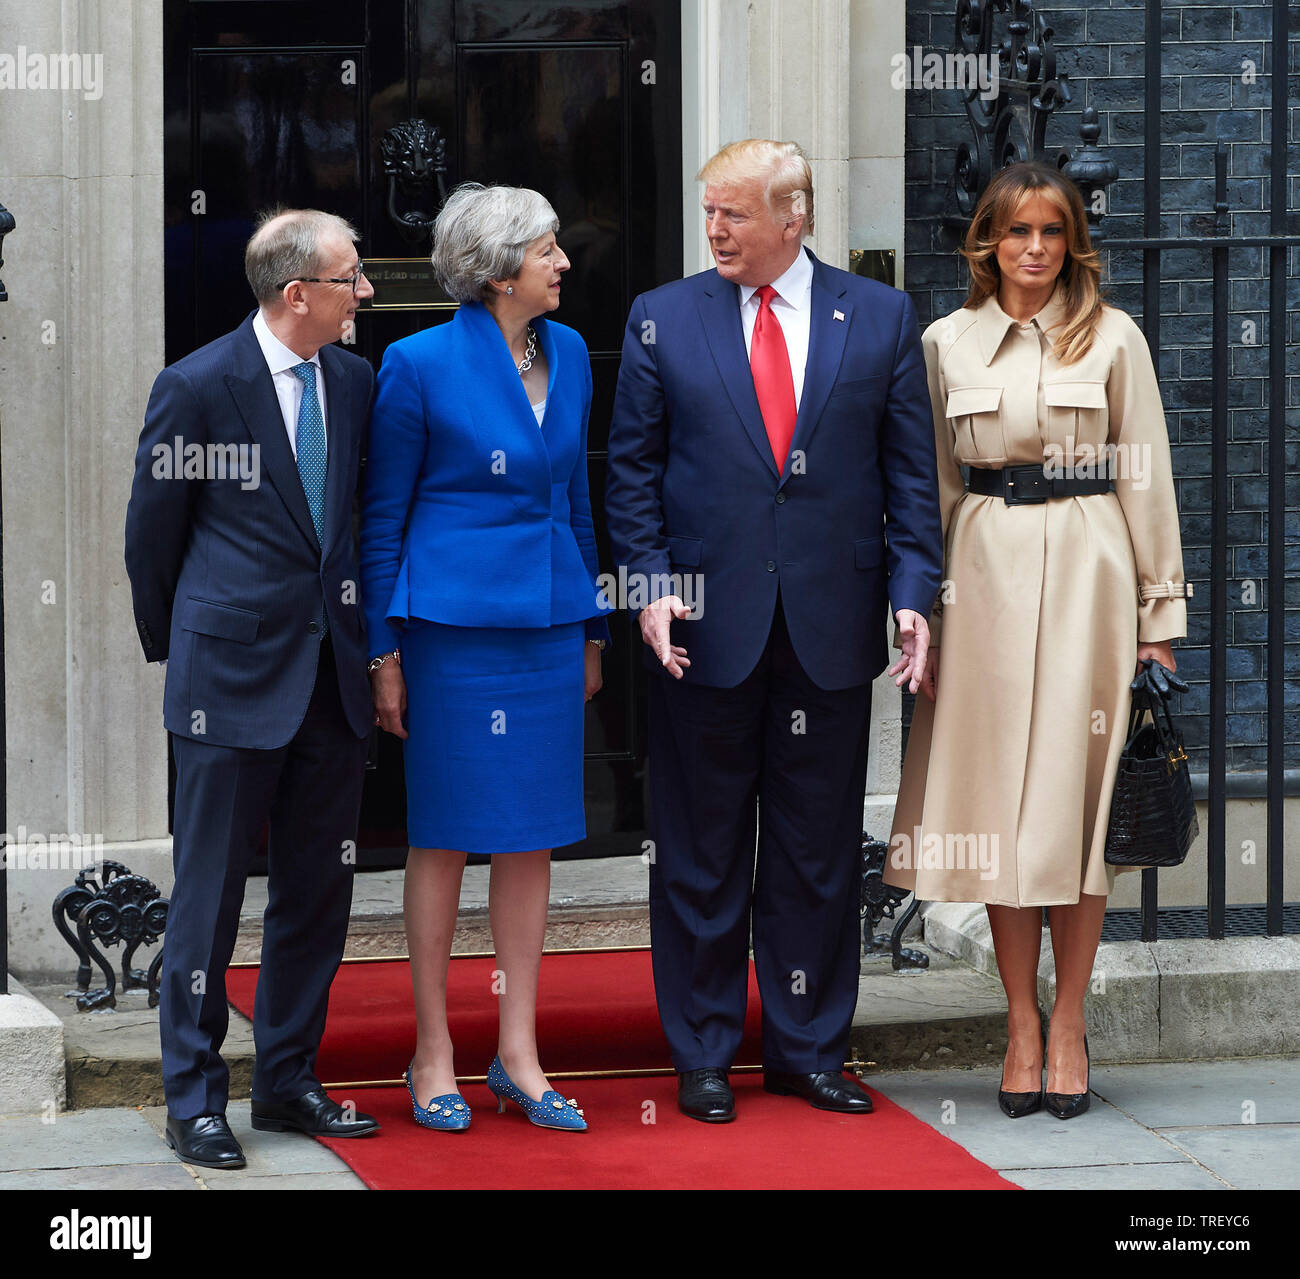 Husband May The 4th Be With You: London, UK. 4th June, 2019. American President Donald